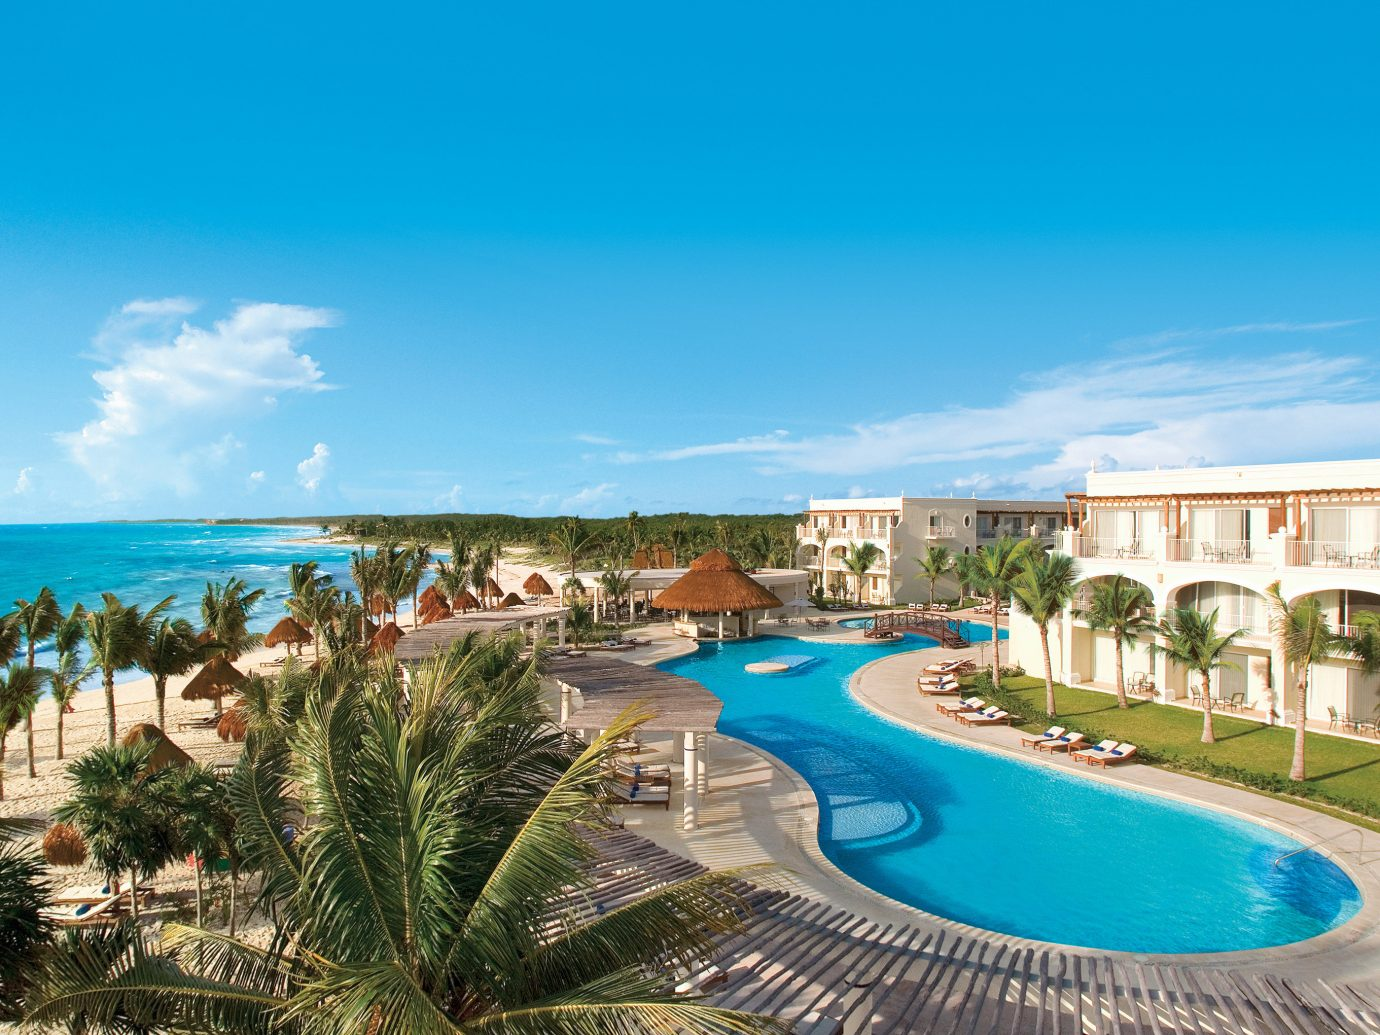 Hotels Romance sky Resort outdoor swimming pool property leisure Beach vacation Pool caribbean estate Lagoon Nature bay resort town Sea real estate reef blue colorful shore swimming sandy